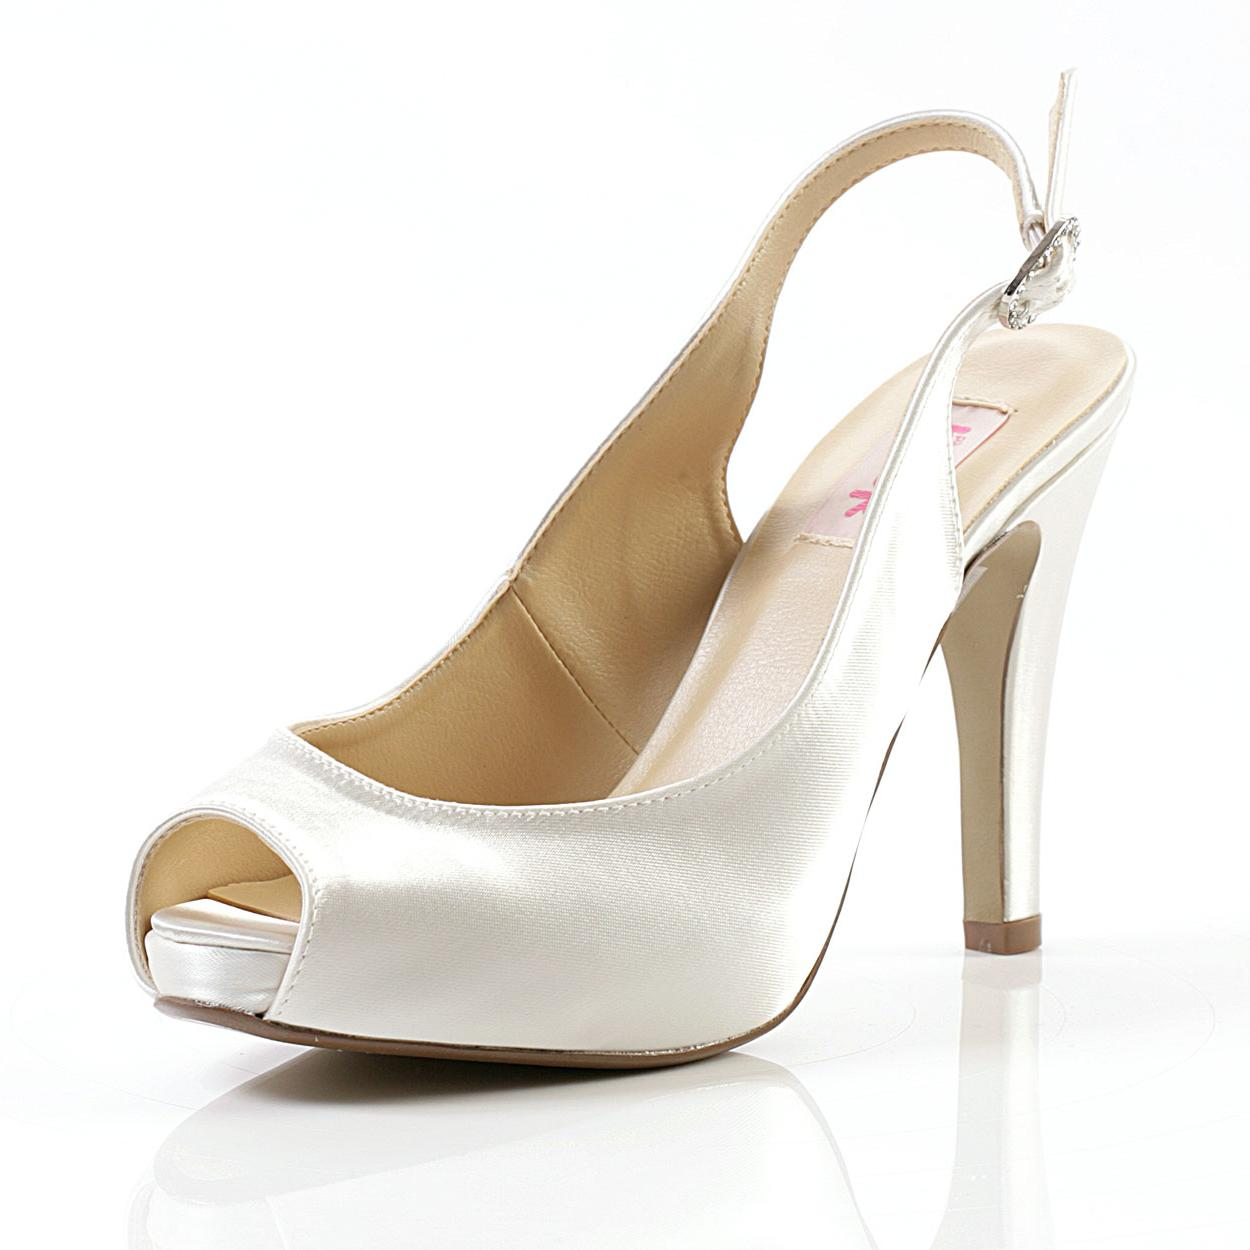 Barbie Wedding Shoes - Pink By